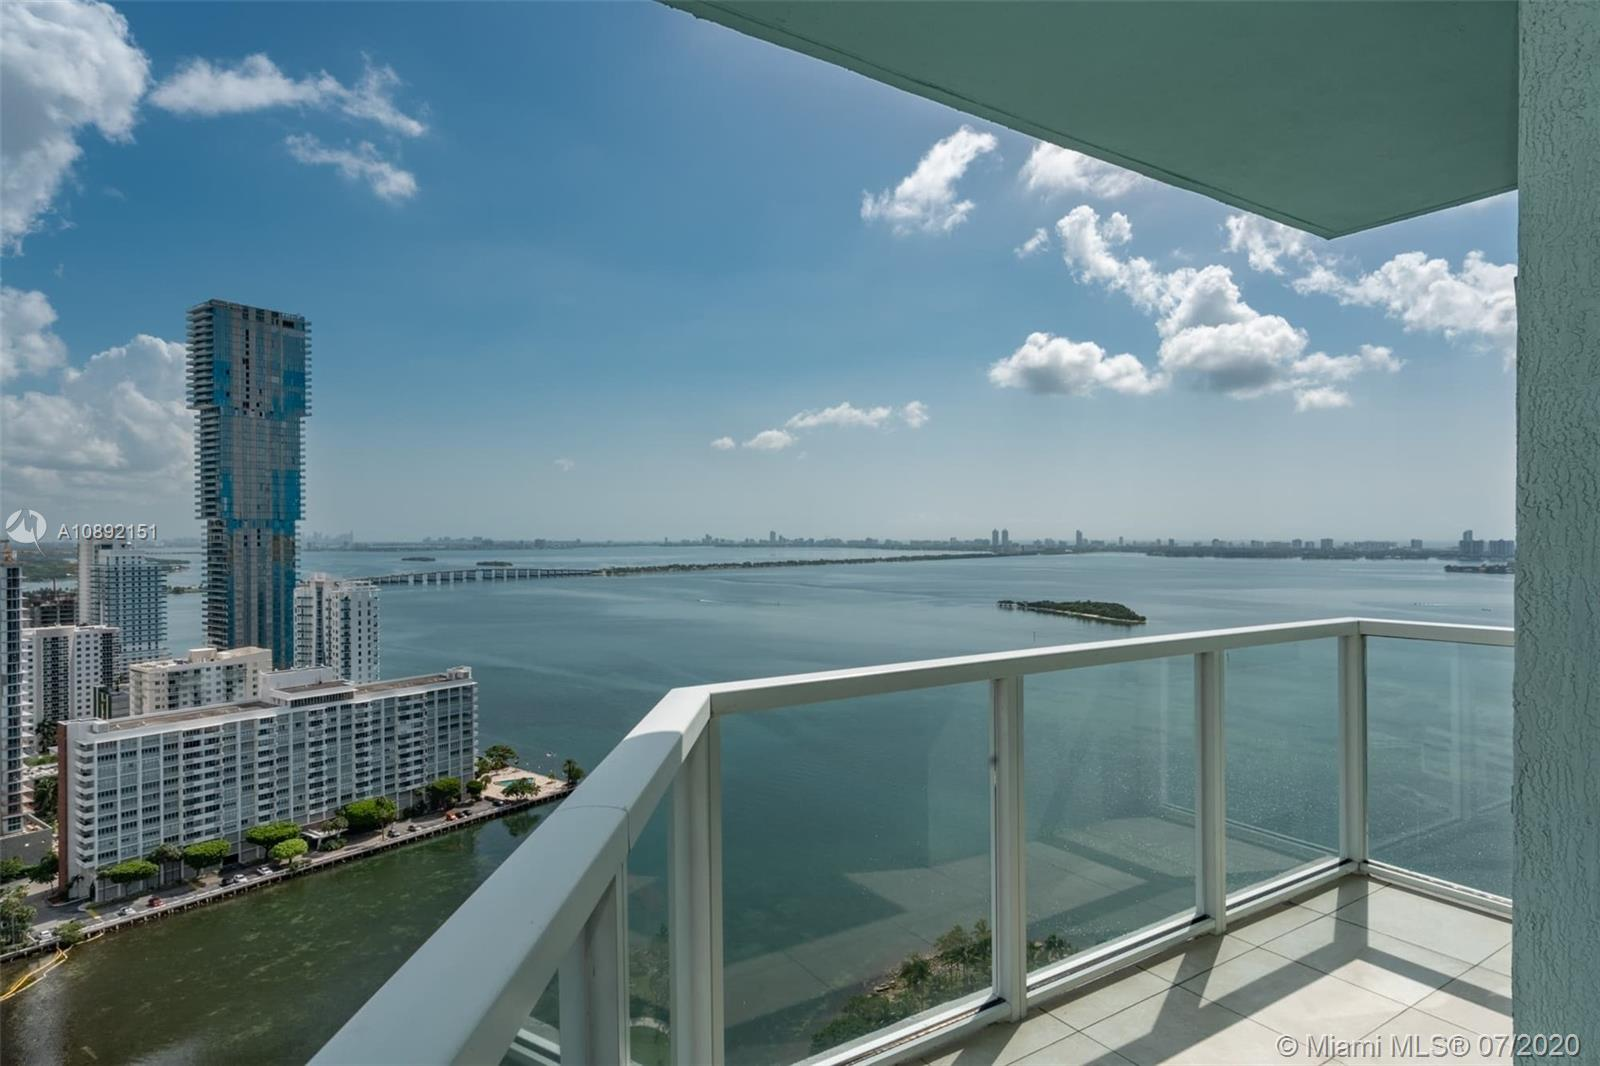 Gorgeous views and lots of storage space in this updated 3 bedroom 3 bath condo at Quantum on the bay. Wood flooring throughout. Custom Closets and additional custom built storage at entrance. His and her sinks in bathroom with large walk in closet. 2 balconies with great views of the bay, inter coastal waterway and lots of city views. Quantum has world class amenities including 2 pools, movie theatre, multiple community rooms for lounging or holding events. Incredible gym with cardio, pilates, weights and lots of open space for yoga and other types of training. Sauna in gym as well. Pace Park is at the front of building. Shopping is easy with 2 large groceries walking distance and lots of dining options. Easy commute to beaches, downtown, airport, wynwood and much more.